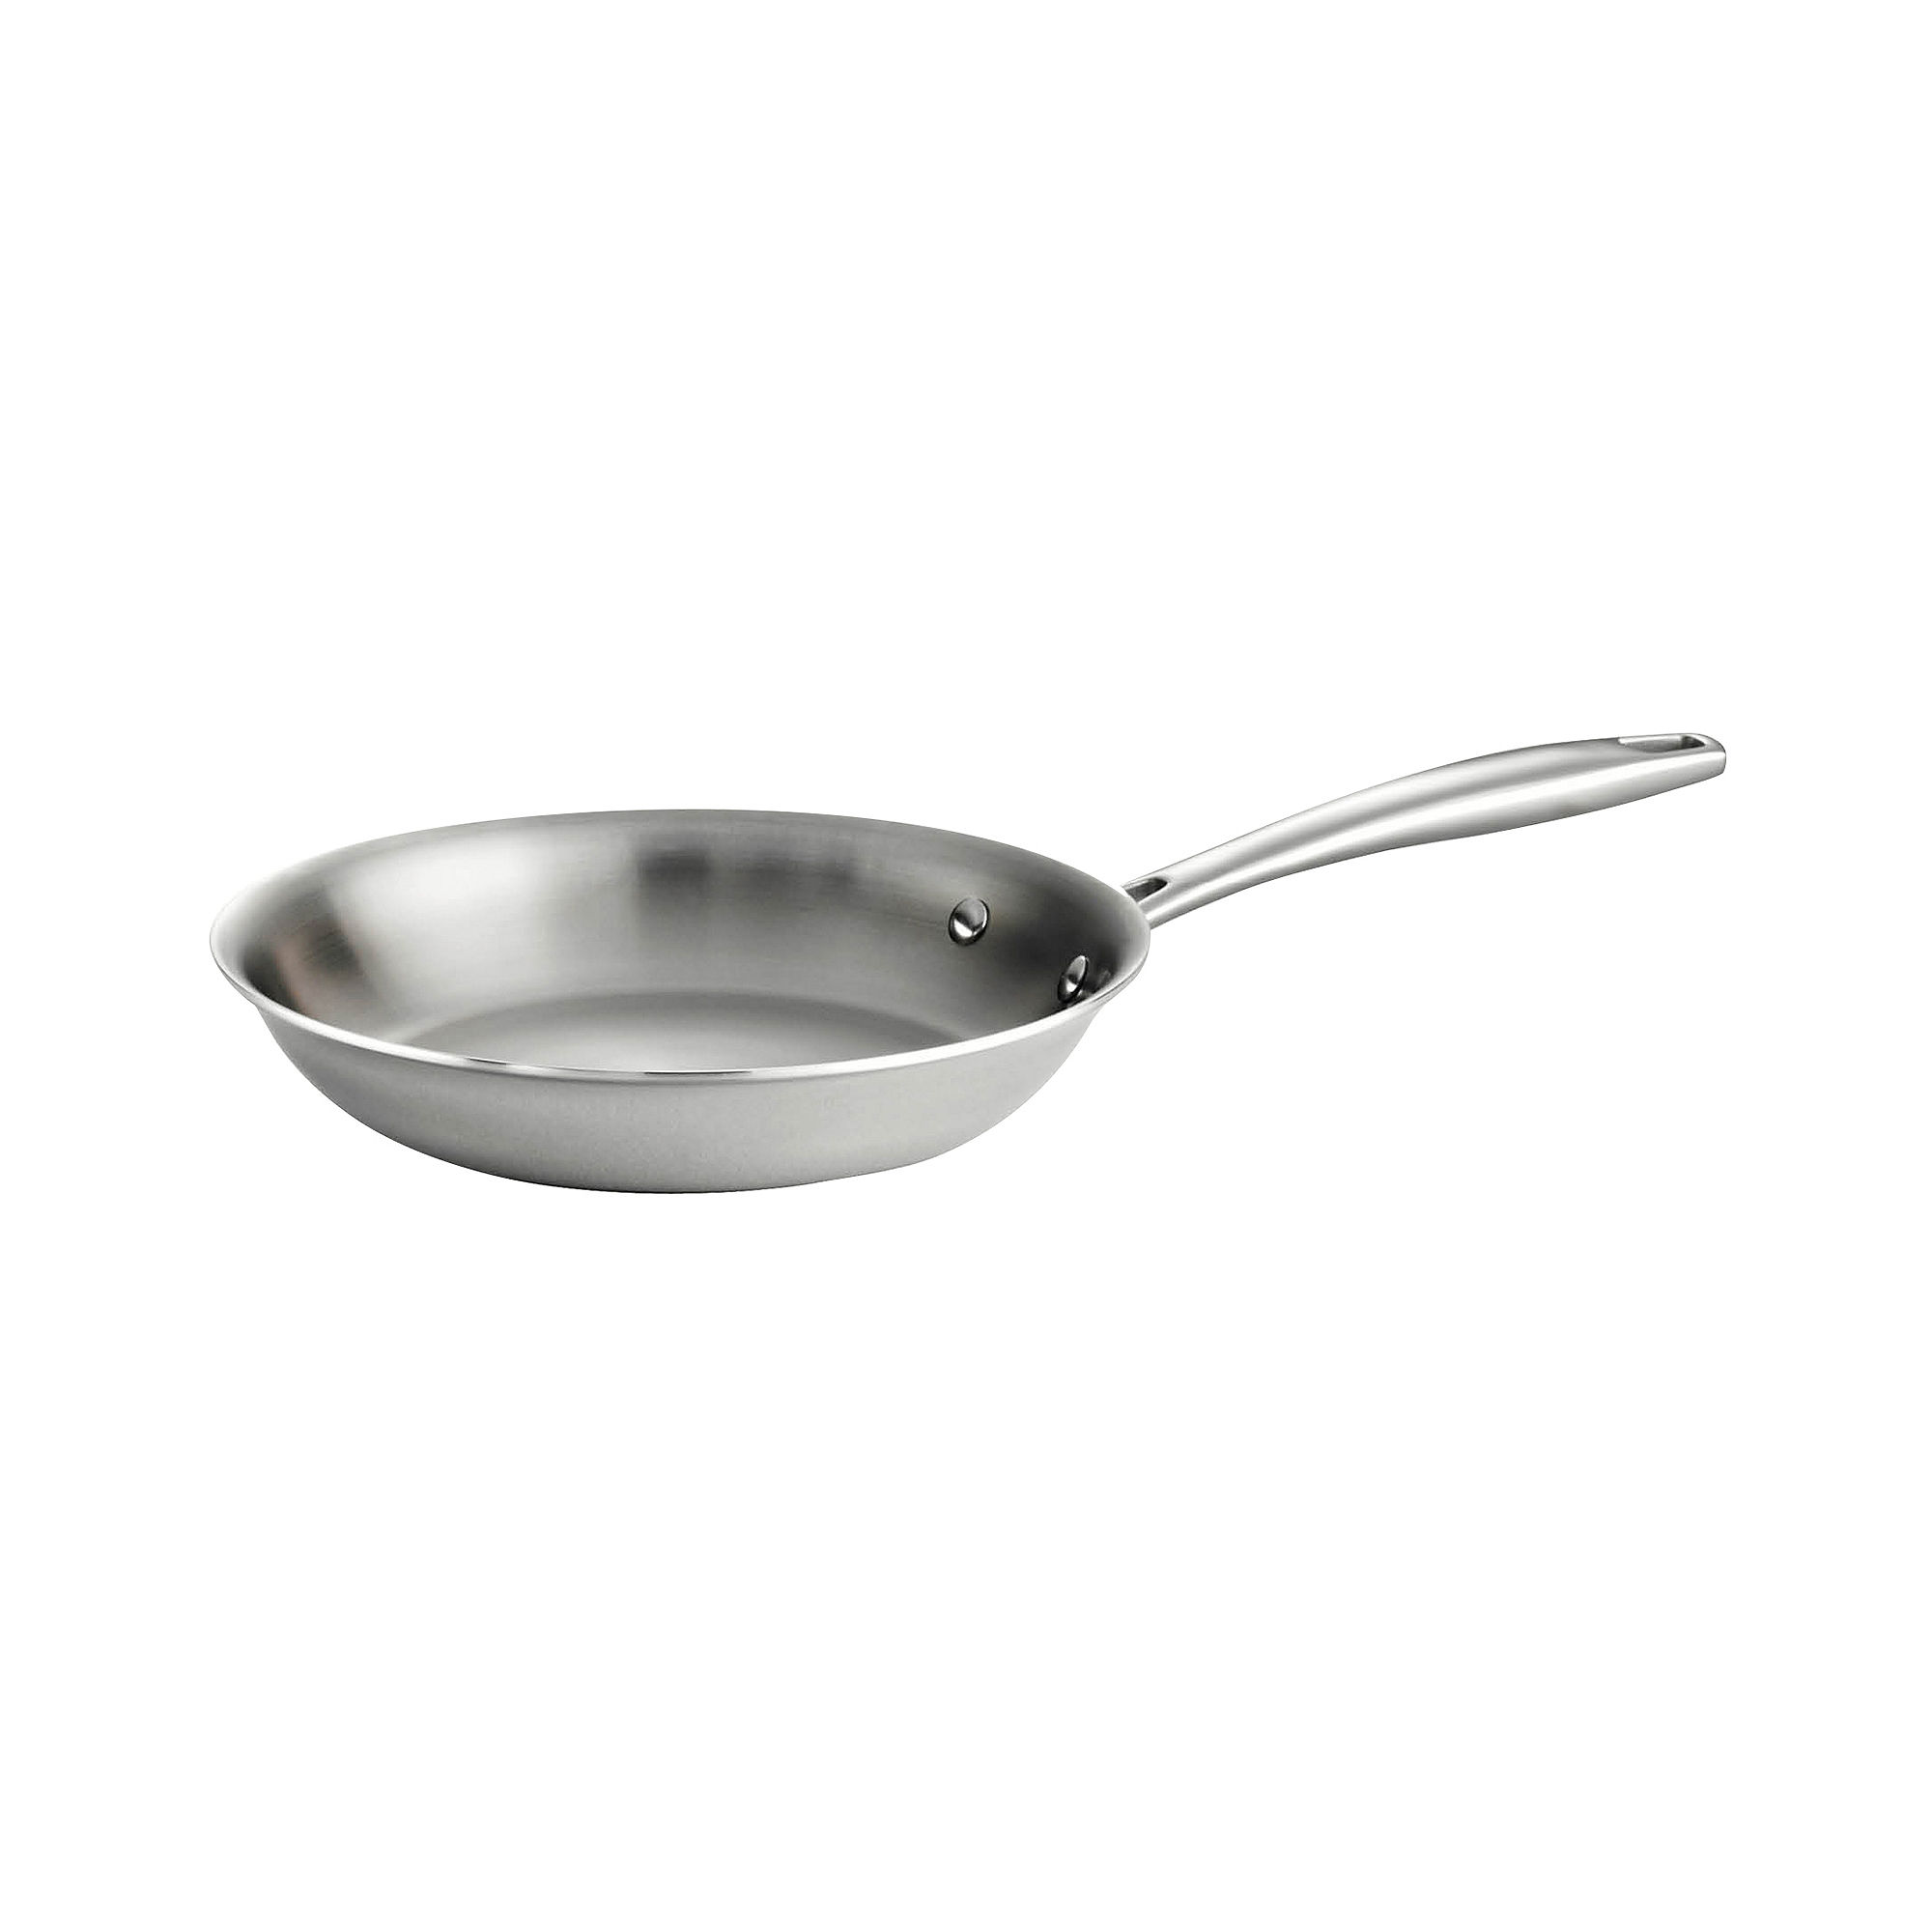 Tramontina Gourmet Tri-Ply Clad 18/10 Stainless Steel Induction-Ready Fry Pan